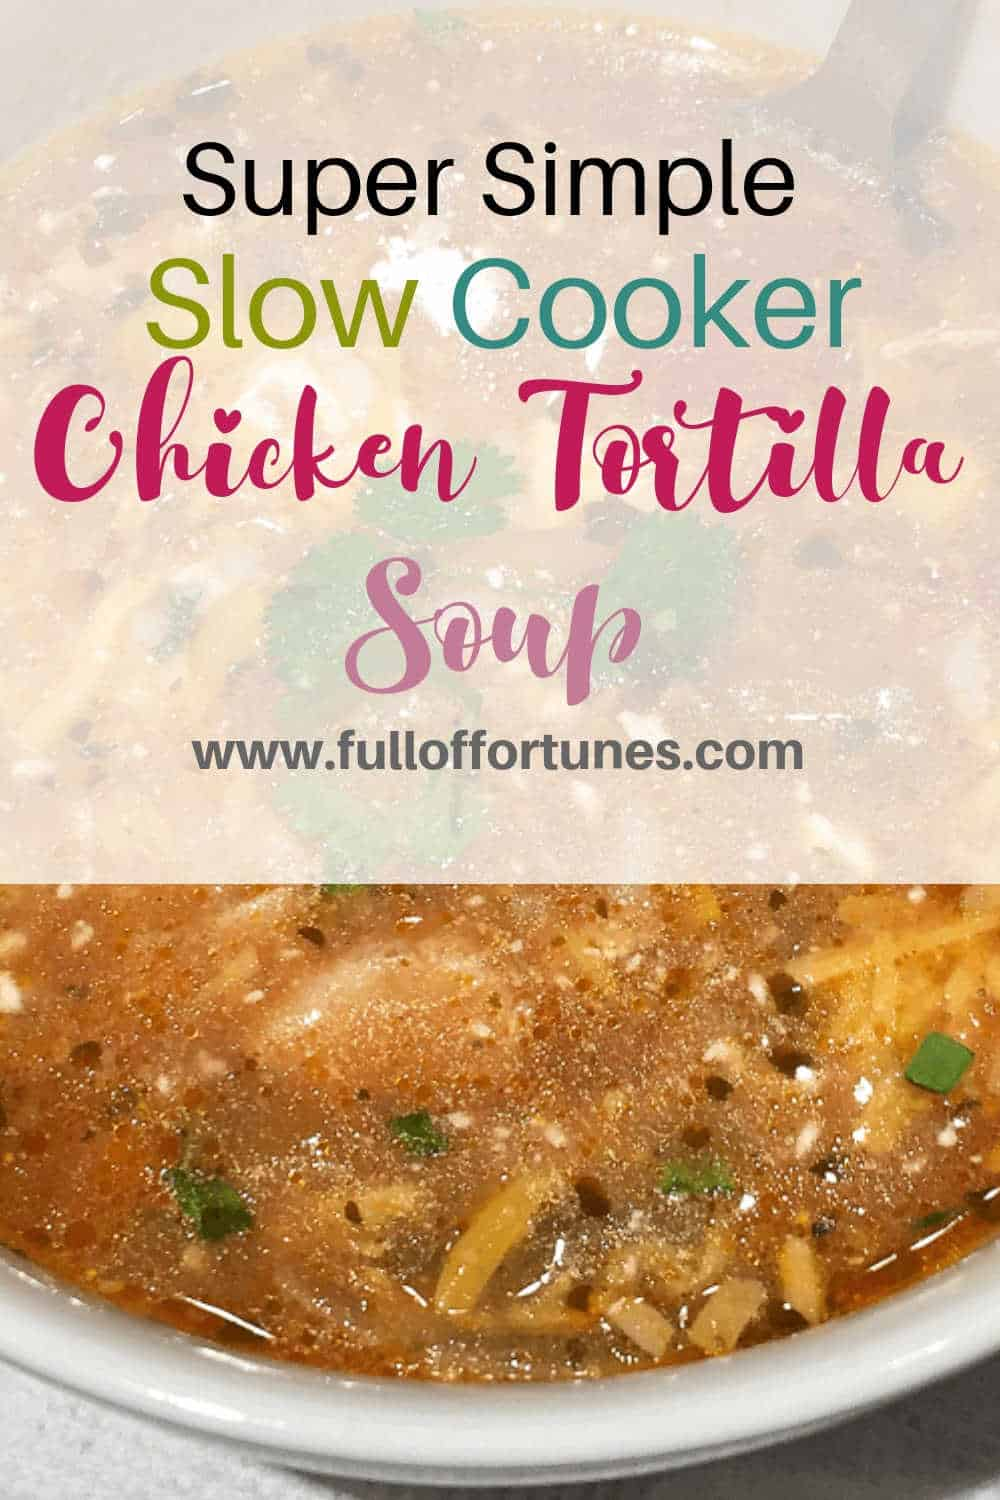 Super Simple Slow Cooker Tortilla Soup